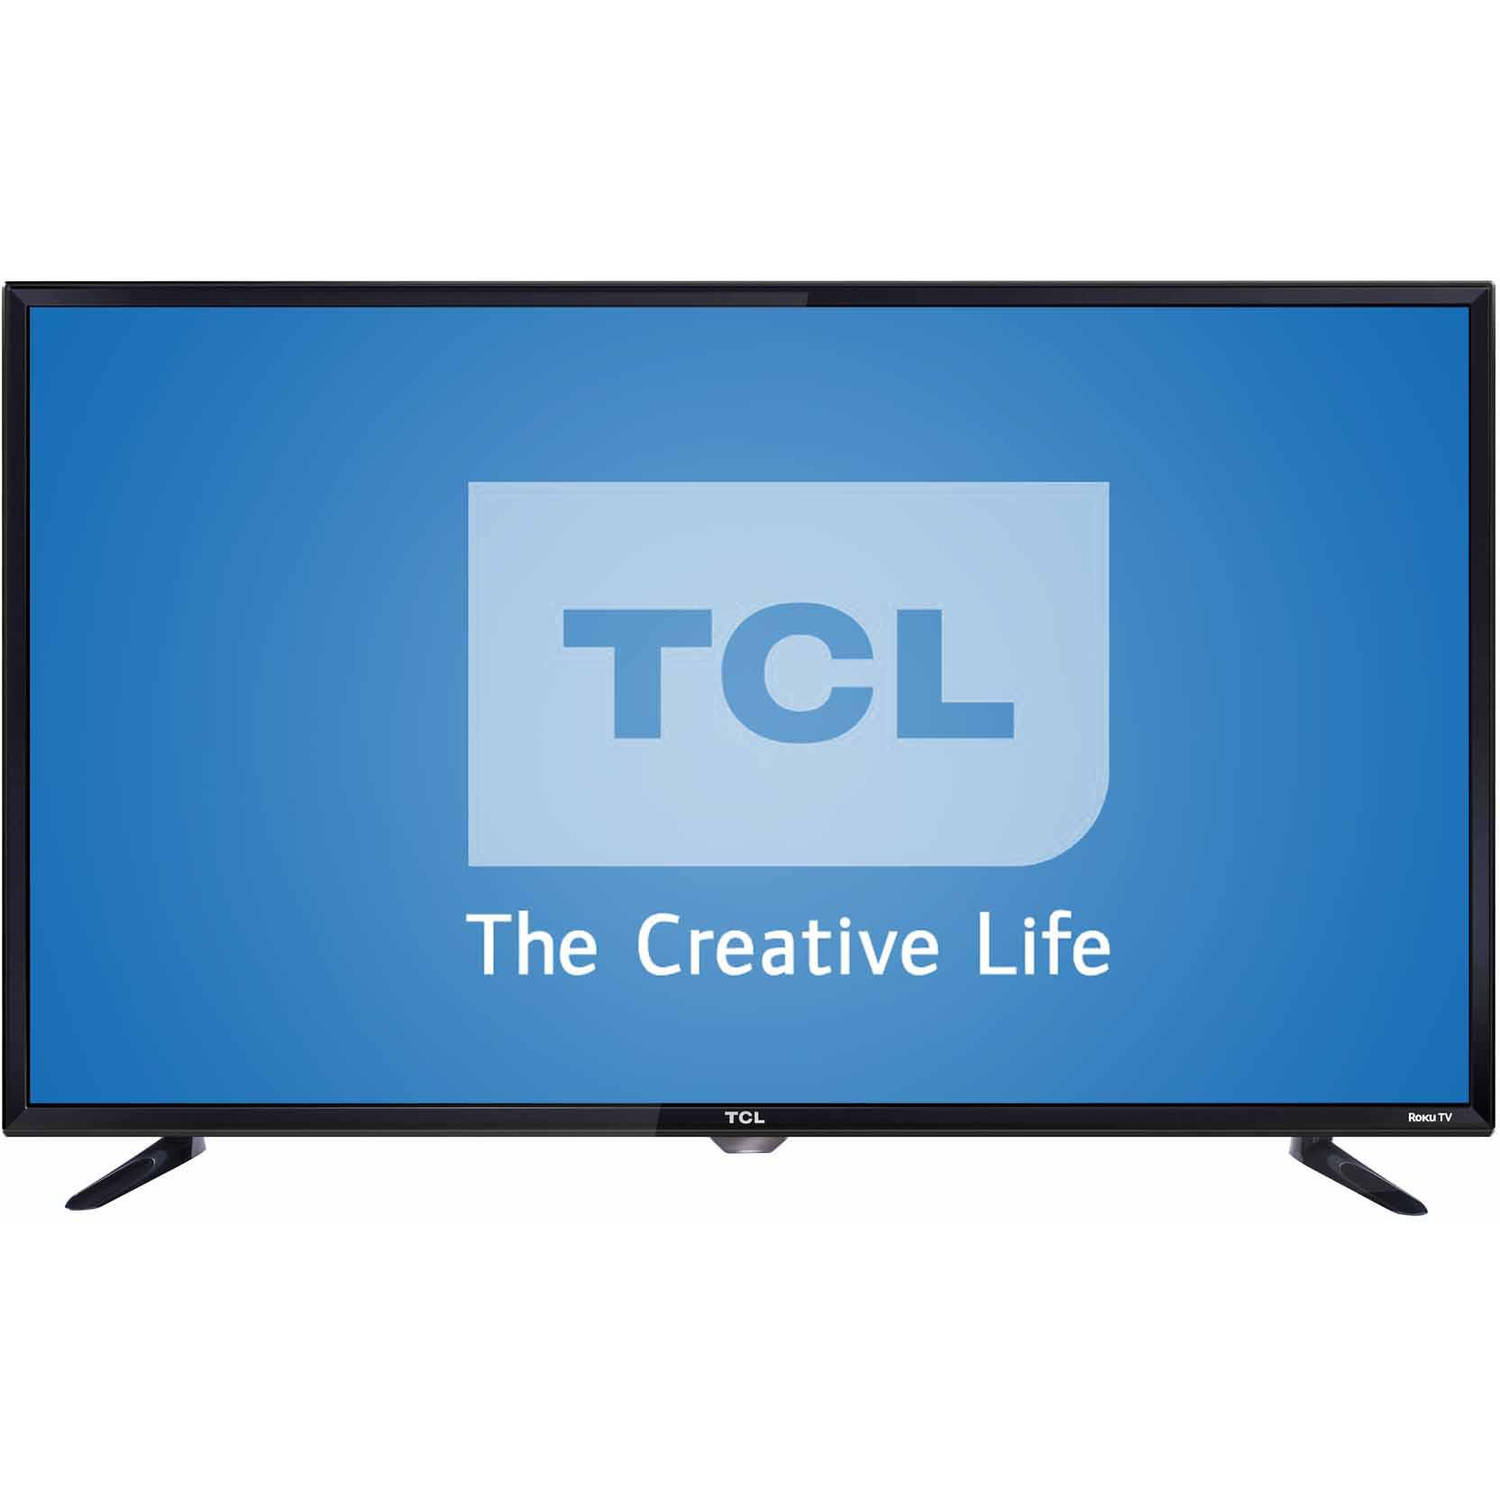 "Refurbished TCL 32S3750 32"" 720p 60Hz Roku Smart LED HDTV"